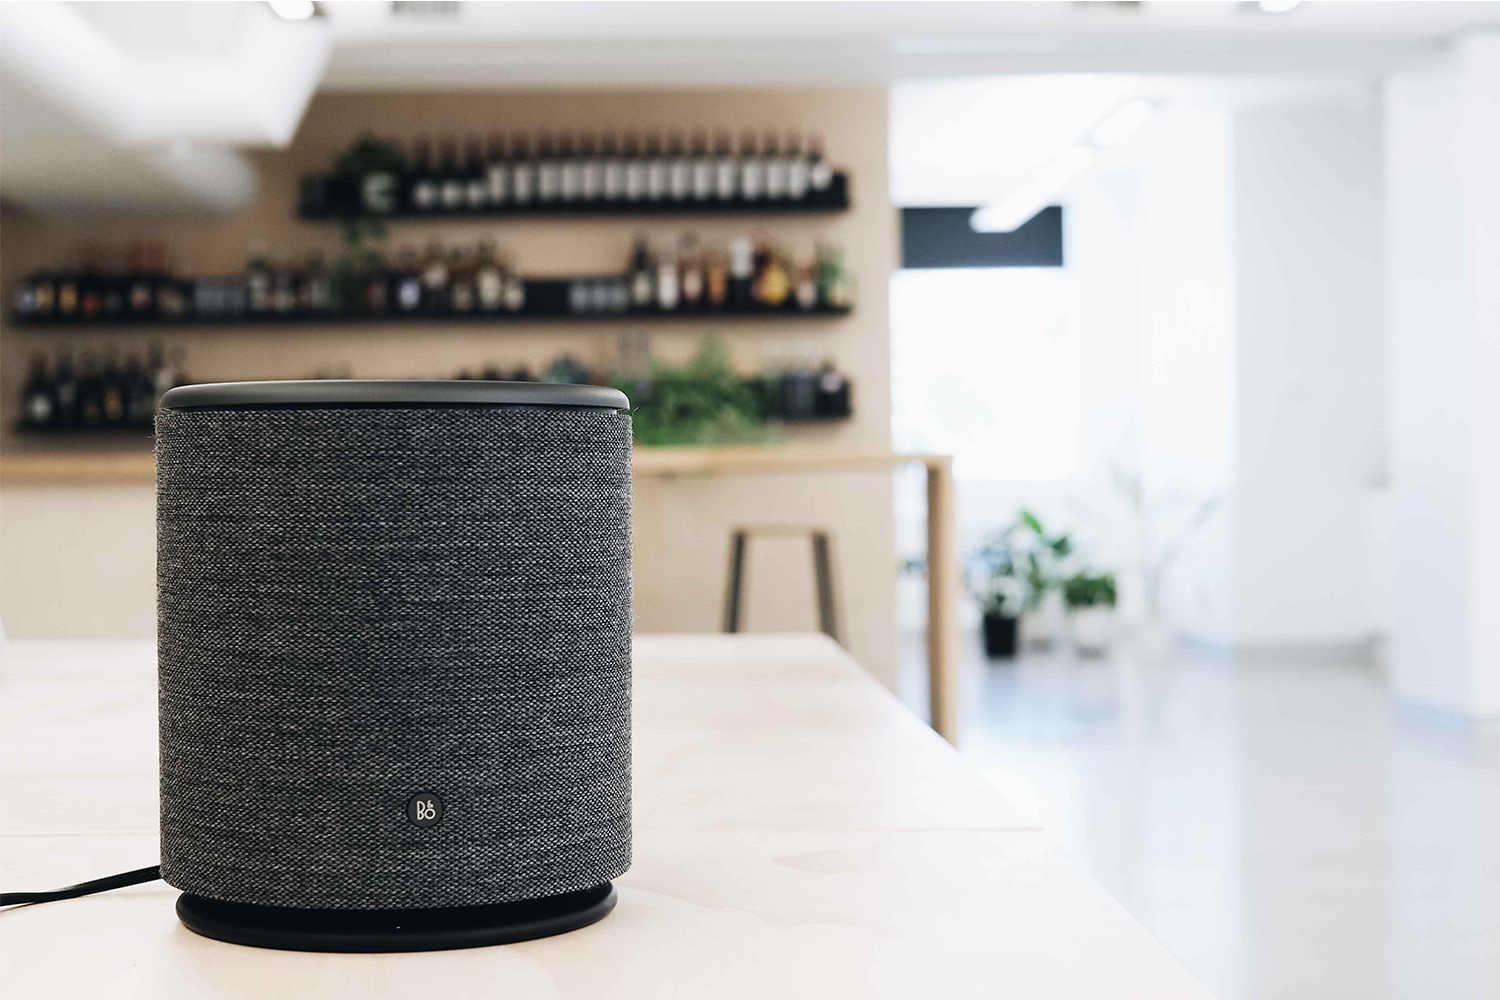 Beoplay M5 Review | Quality Sound & Design